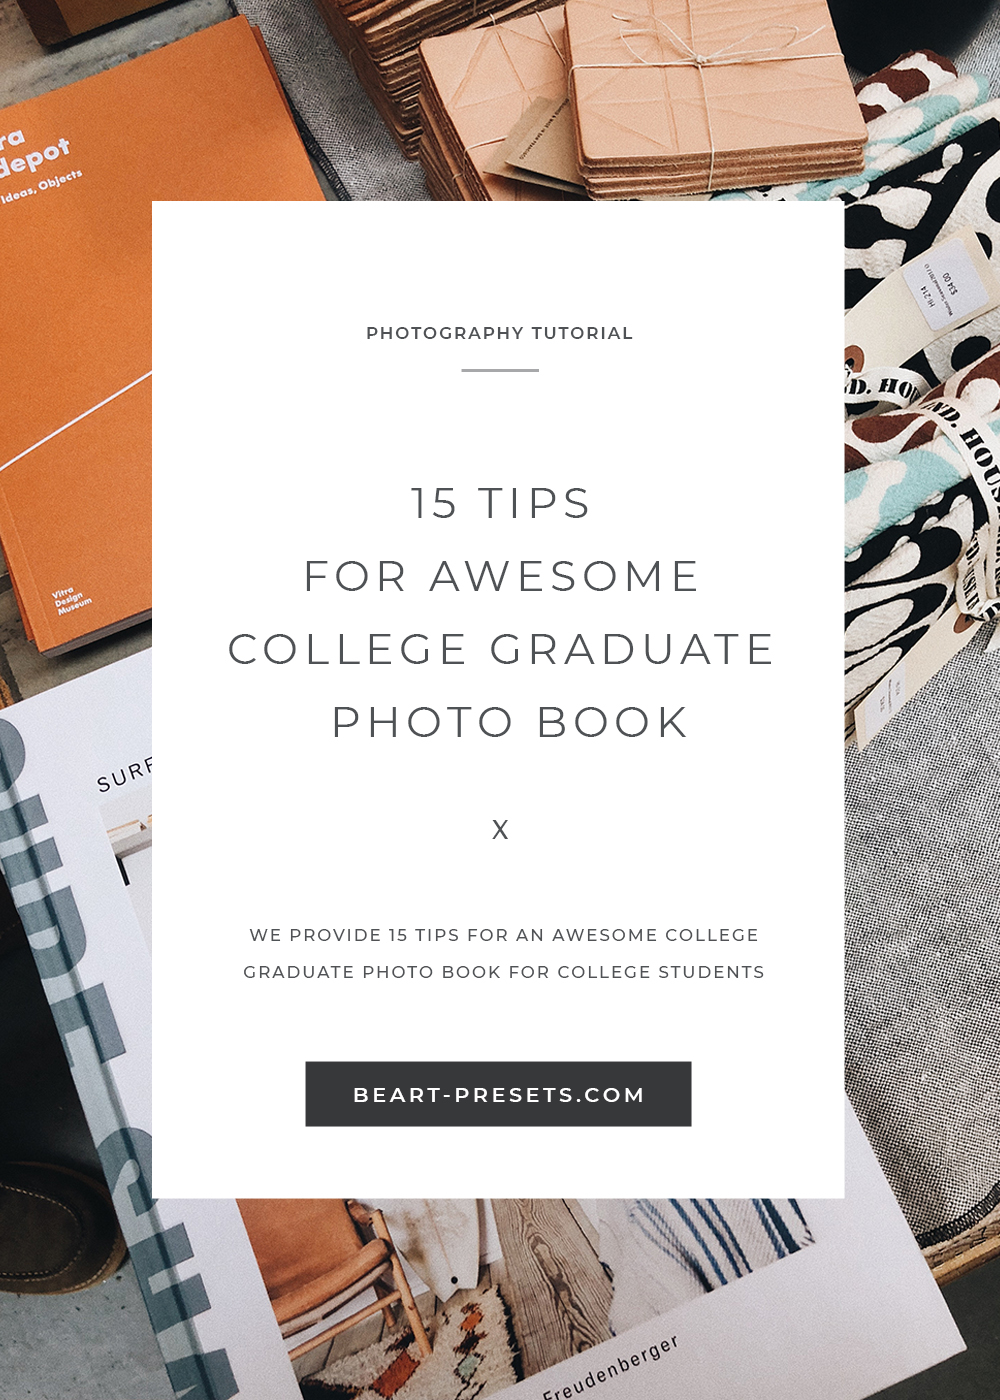 15 tips for great photo book